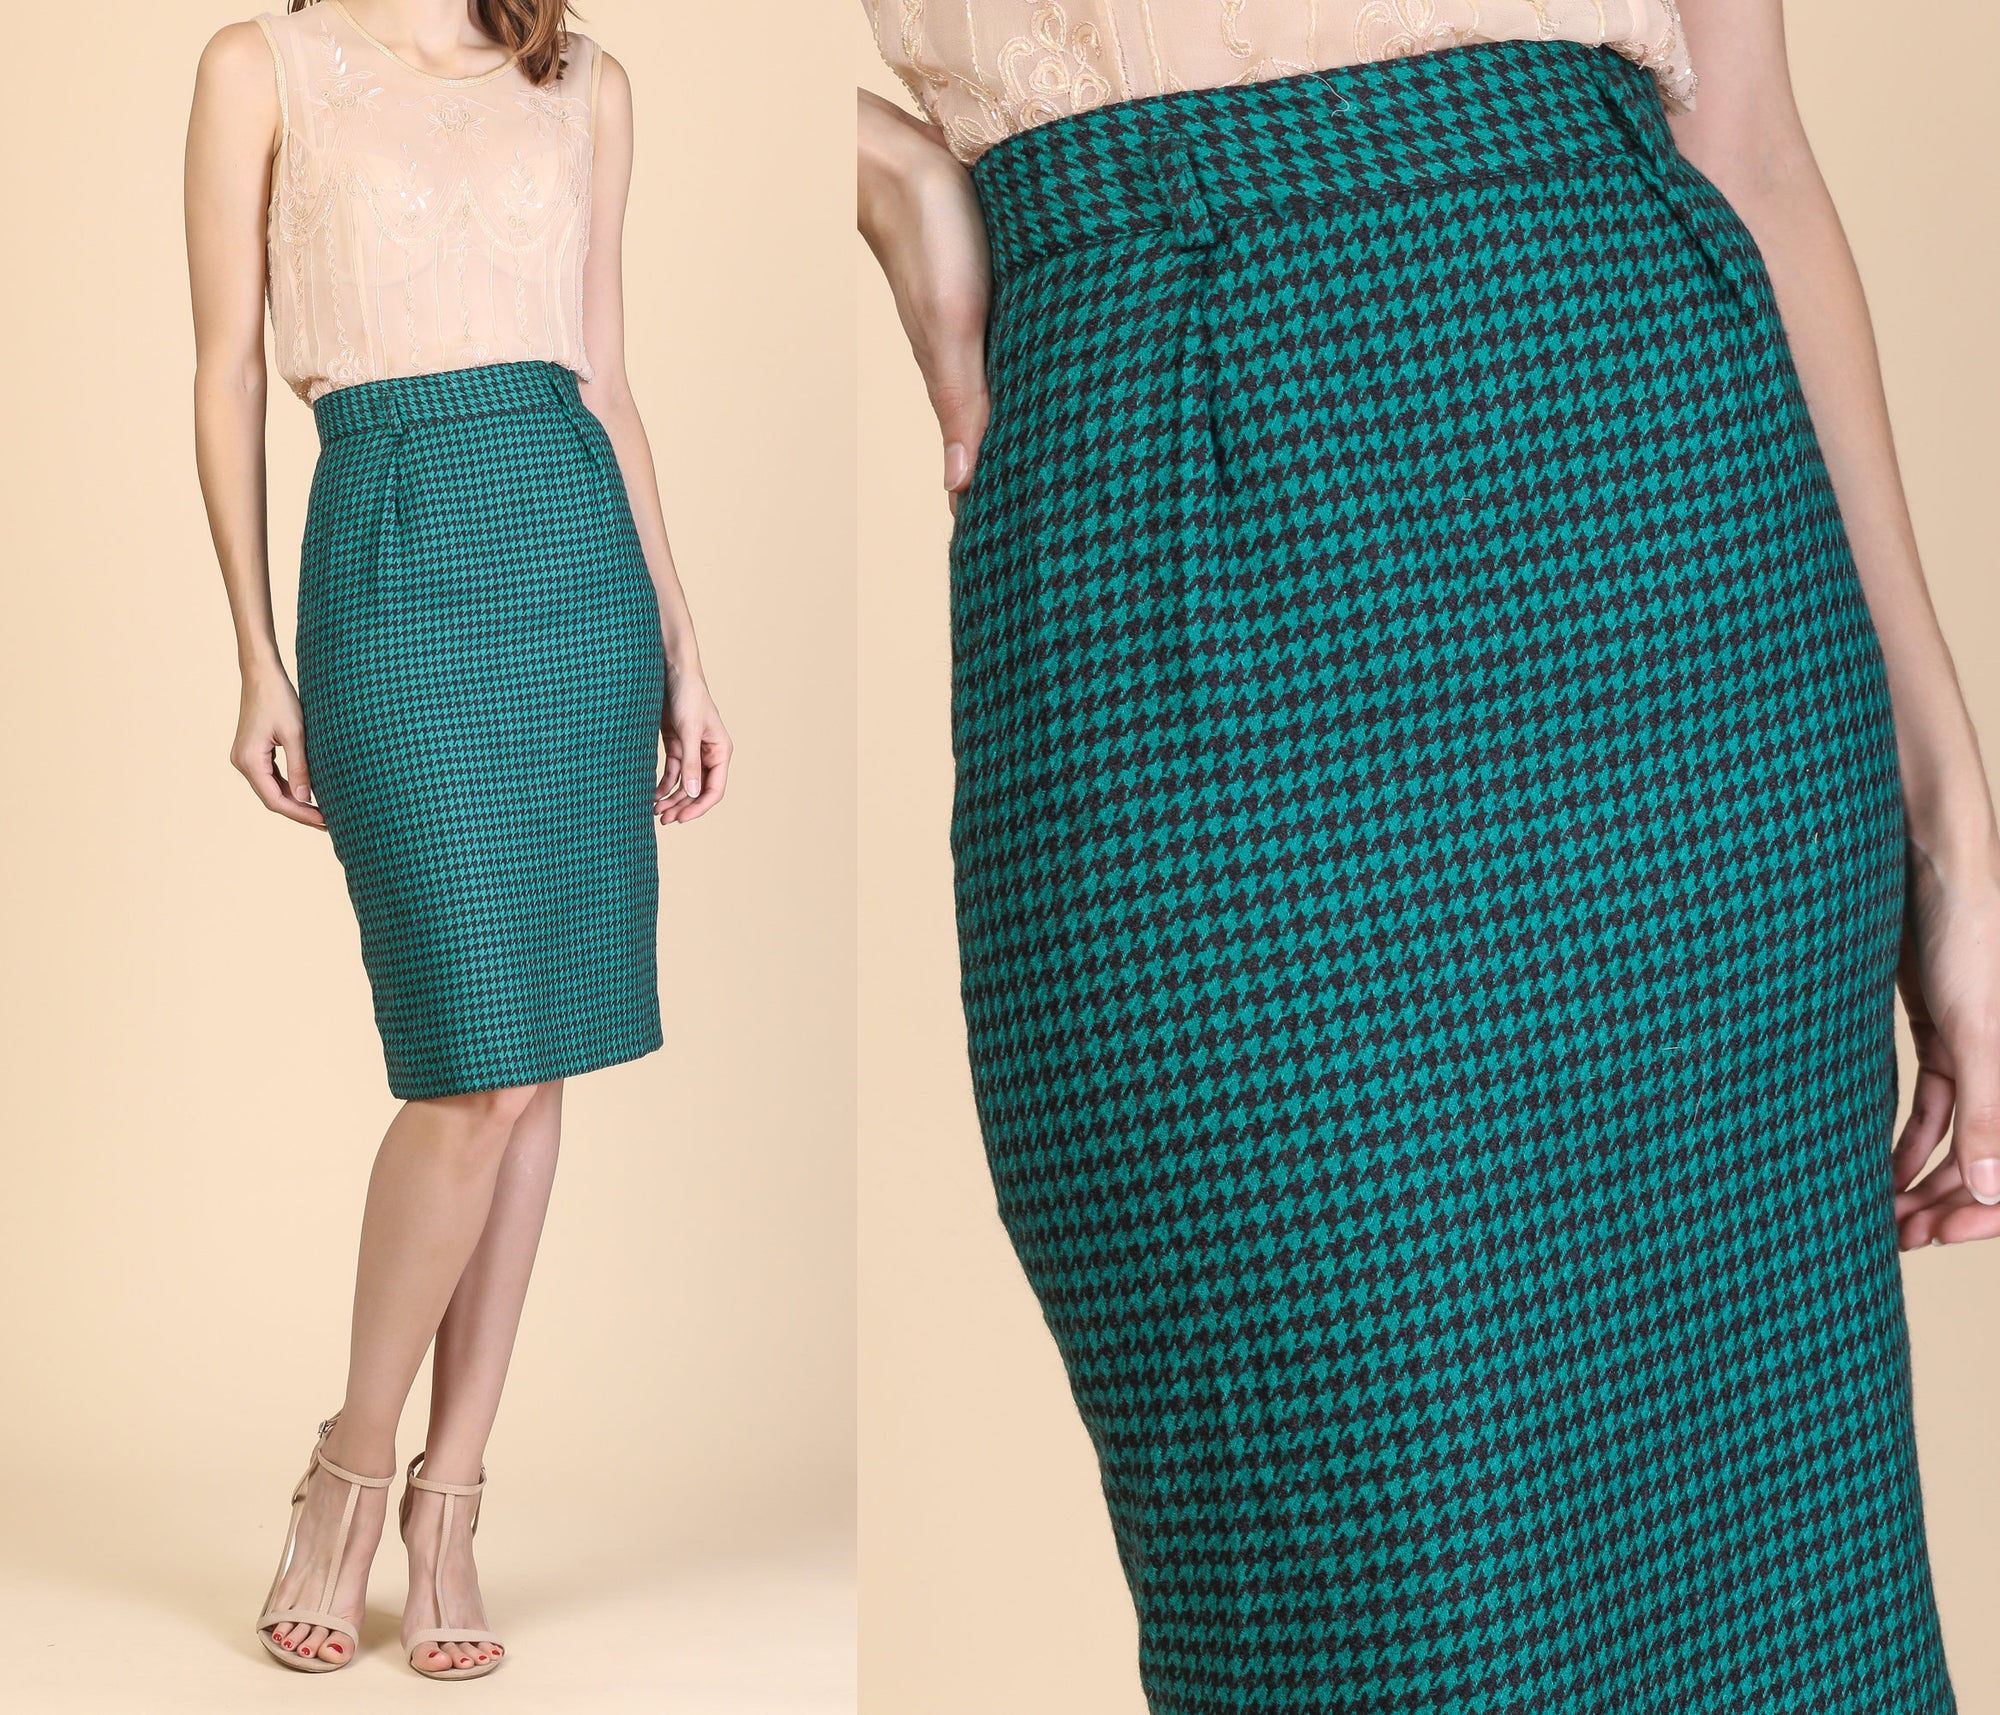 80s Houndstooth Pencil Skirt - Extra Small